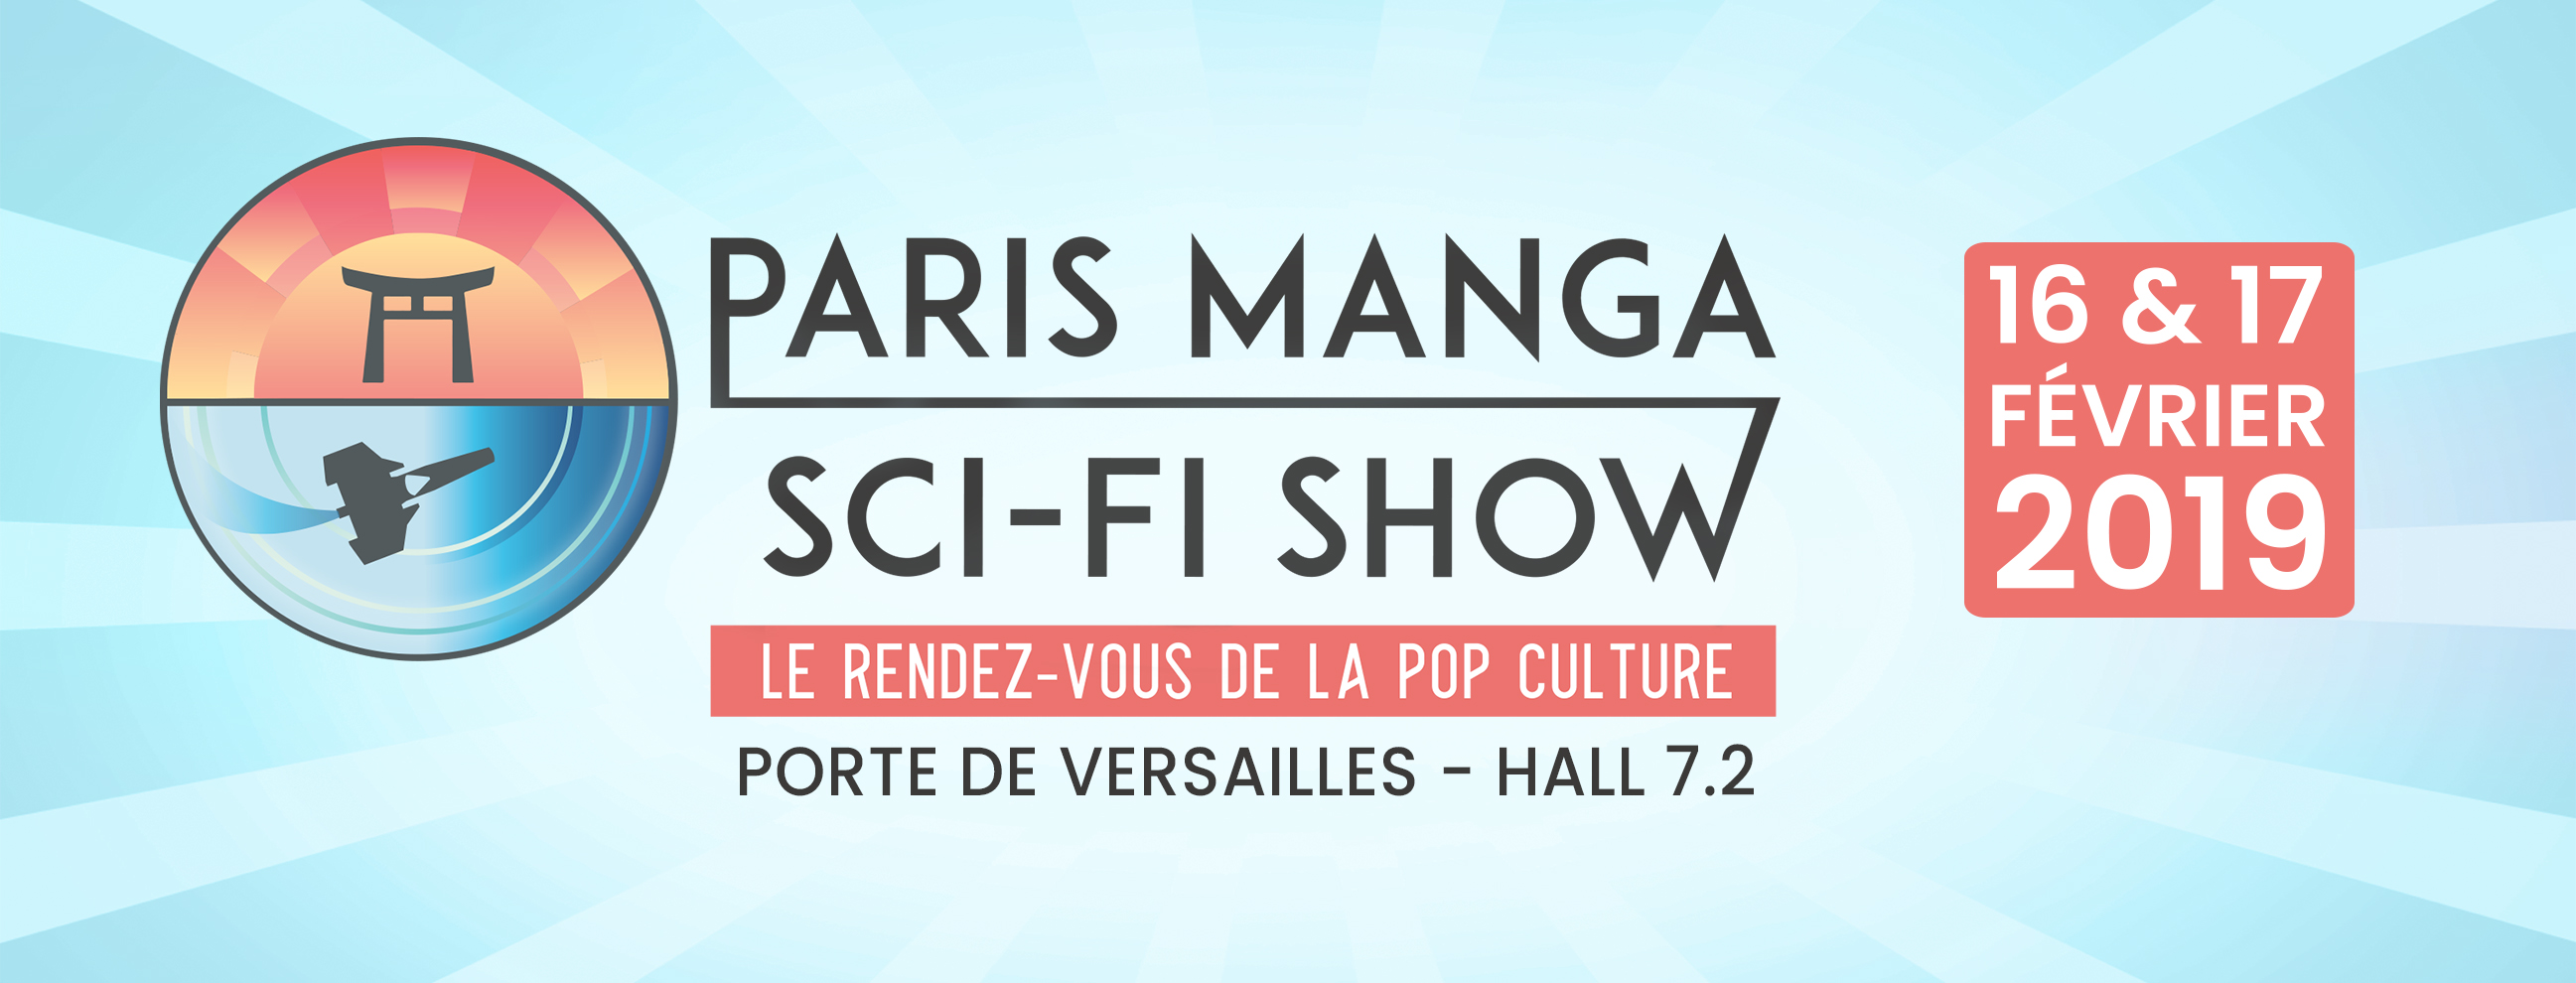 paris-manga-sci-fi-show-27e-edition